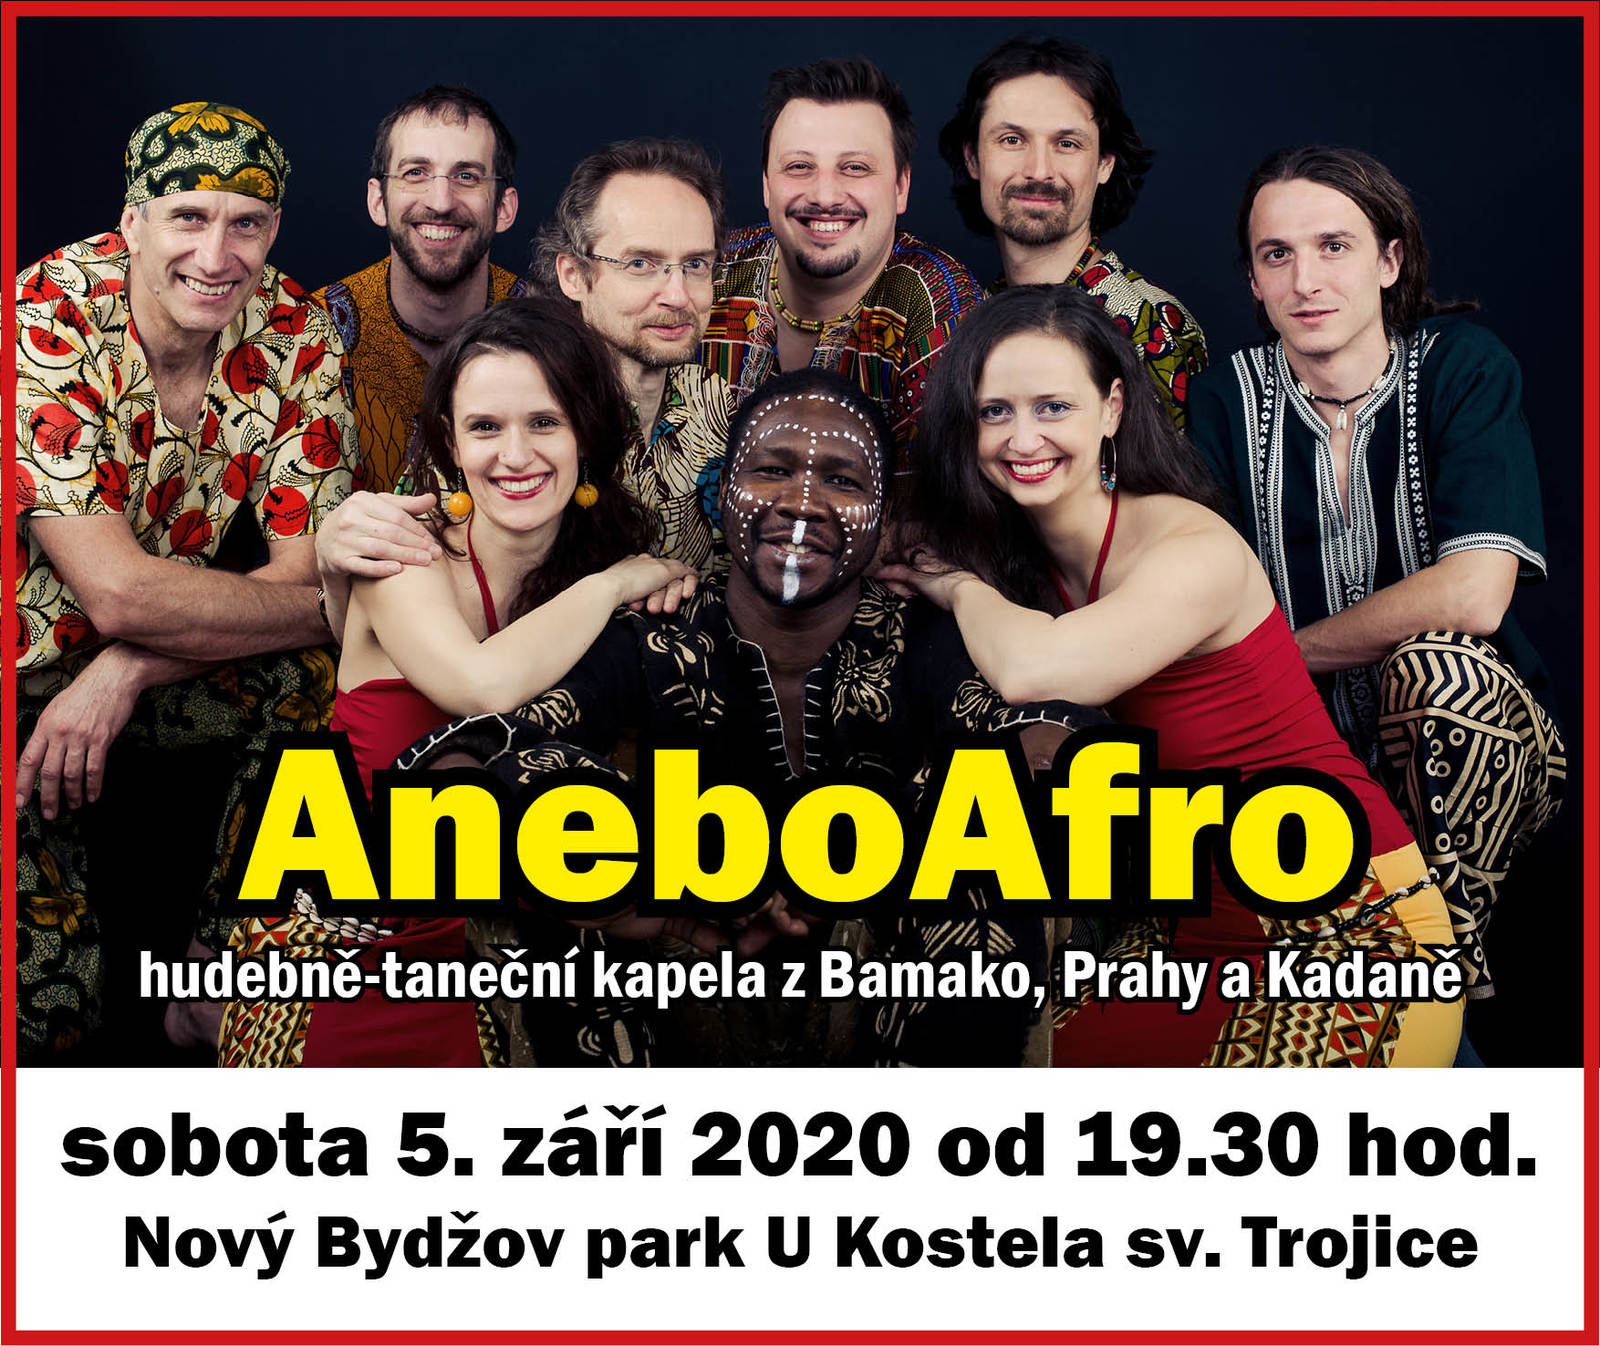 plakat-aneboafro